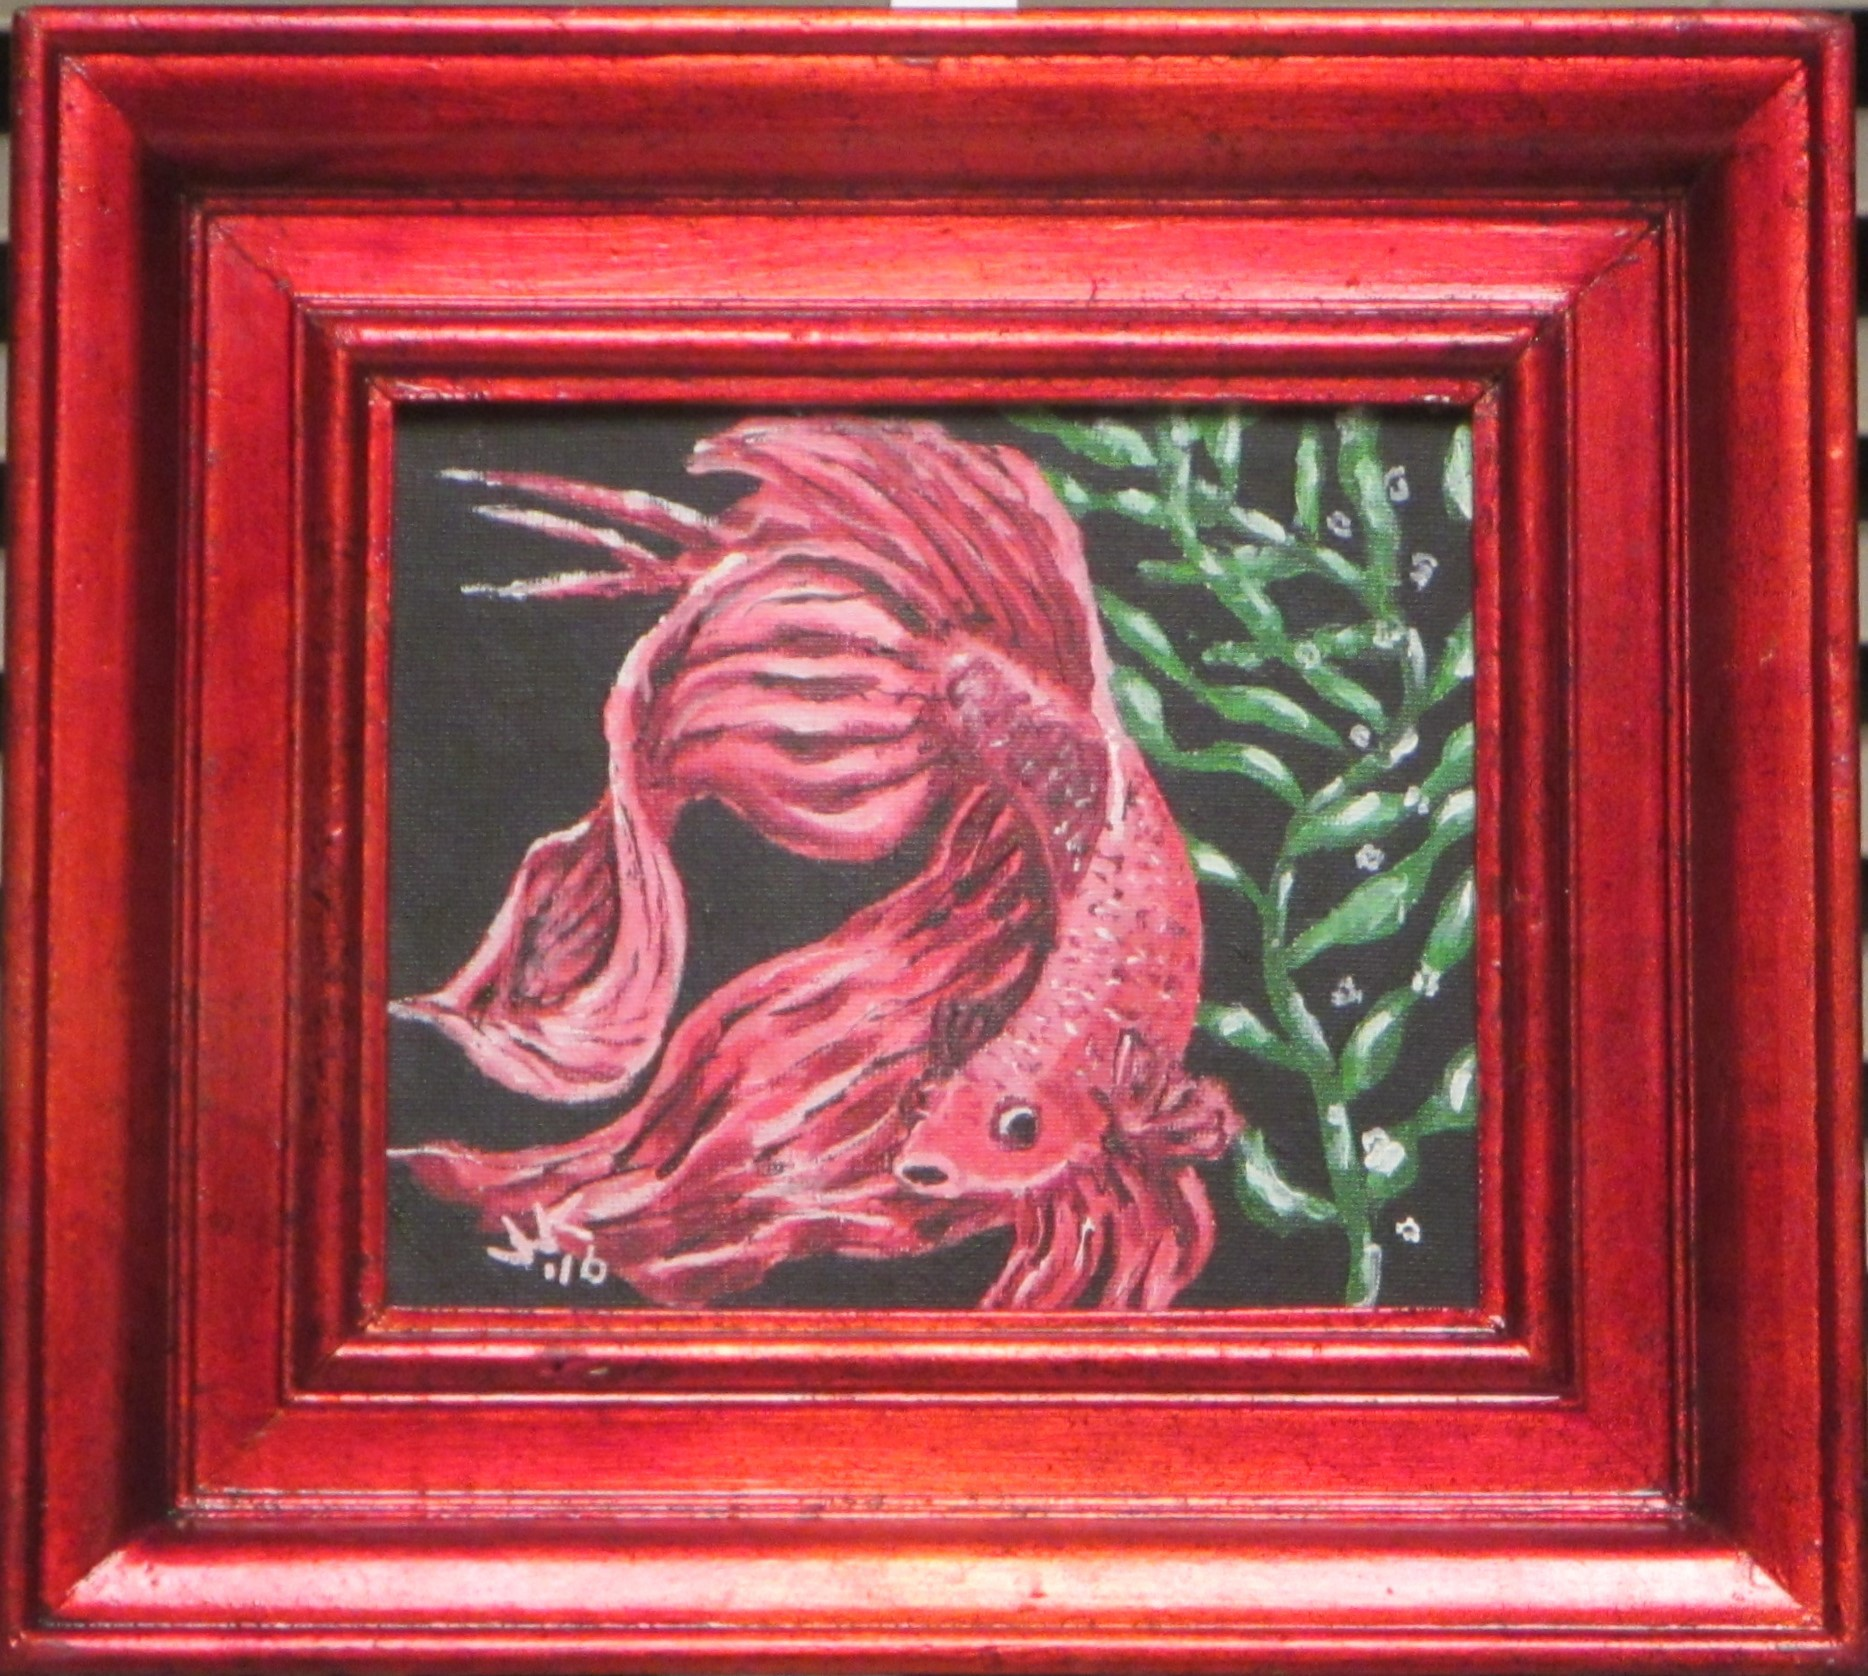 Red Betta in Red Frame